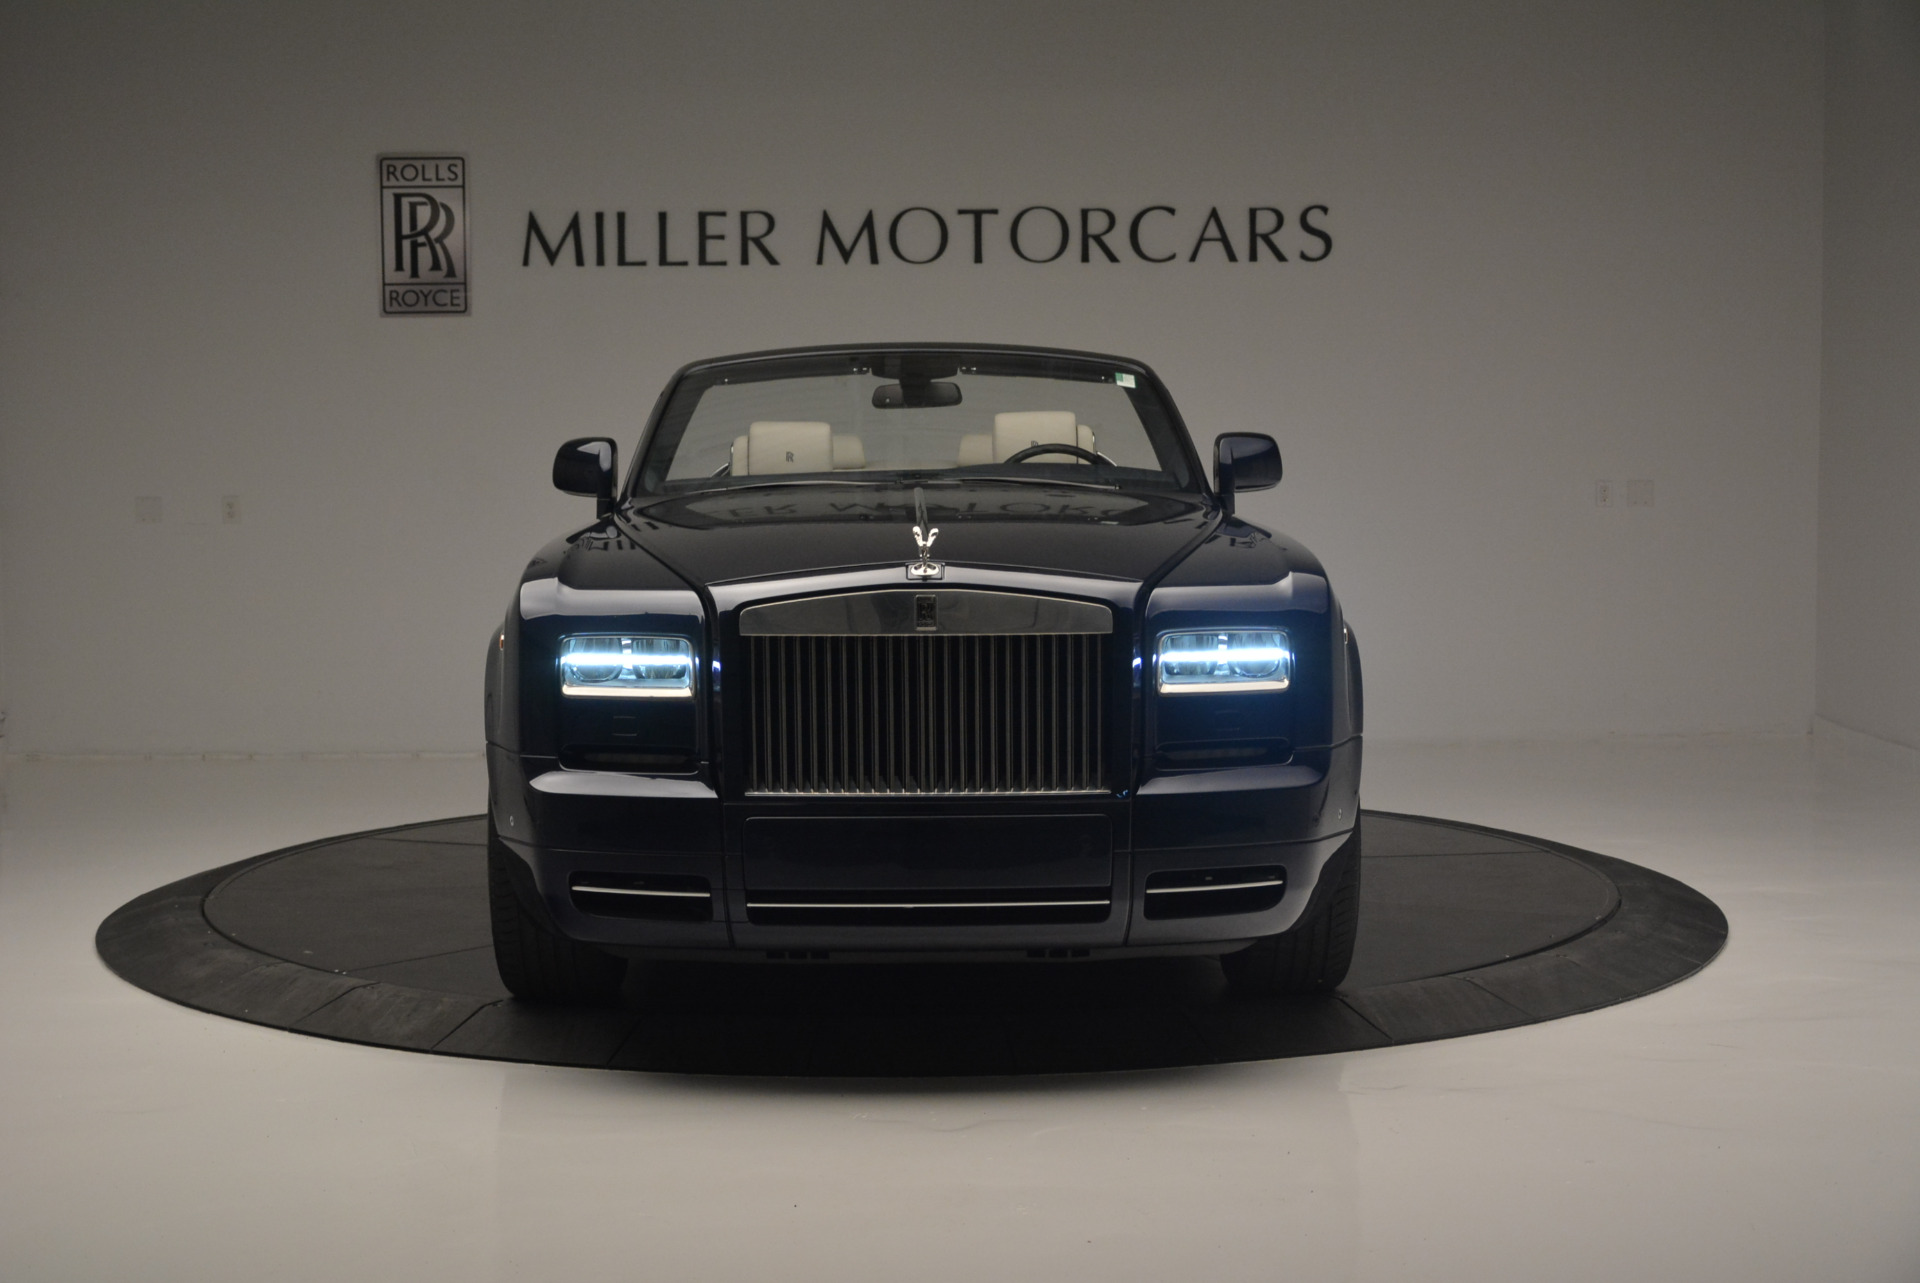 Used 2014 Rolls-Royce Phantom Drophead Coupe  For Sale In Westport, CT 2356_p8